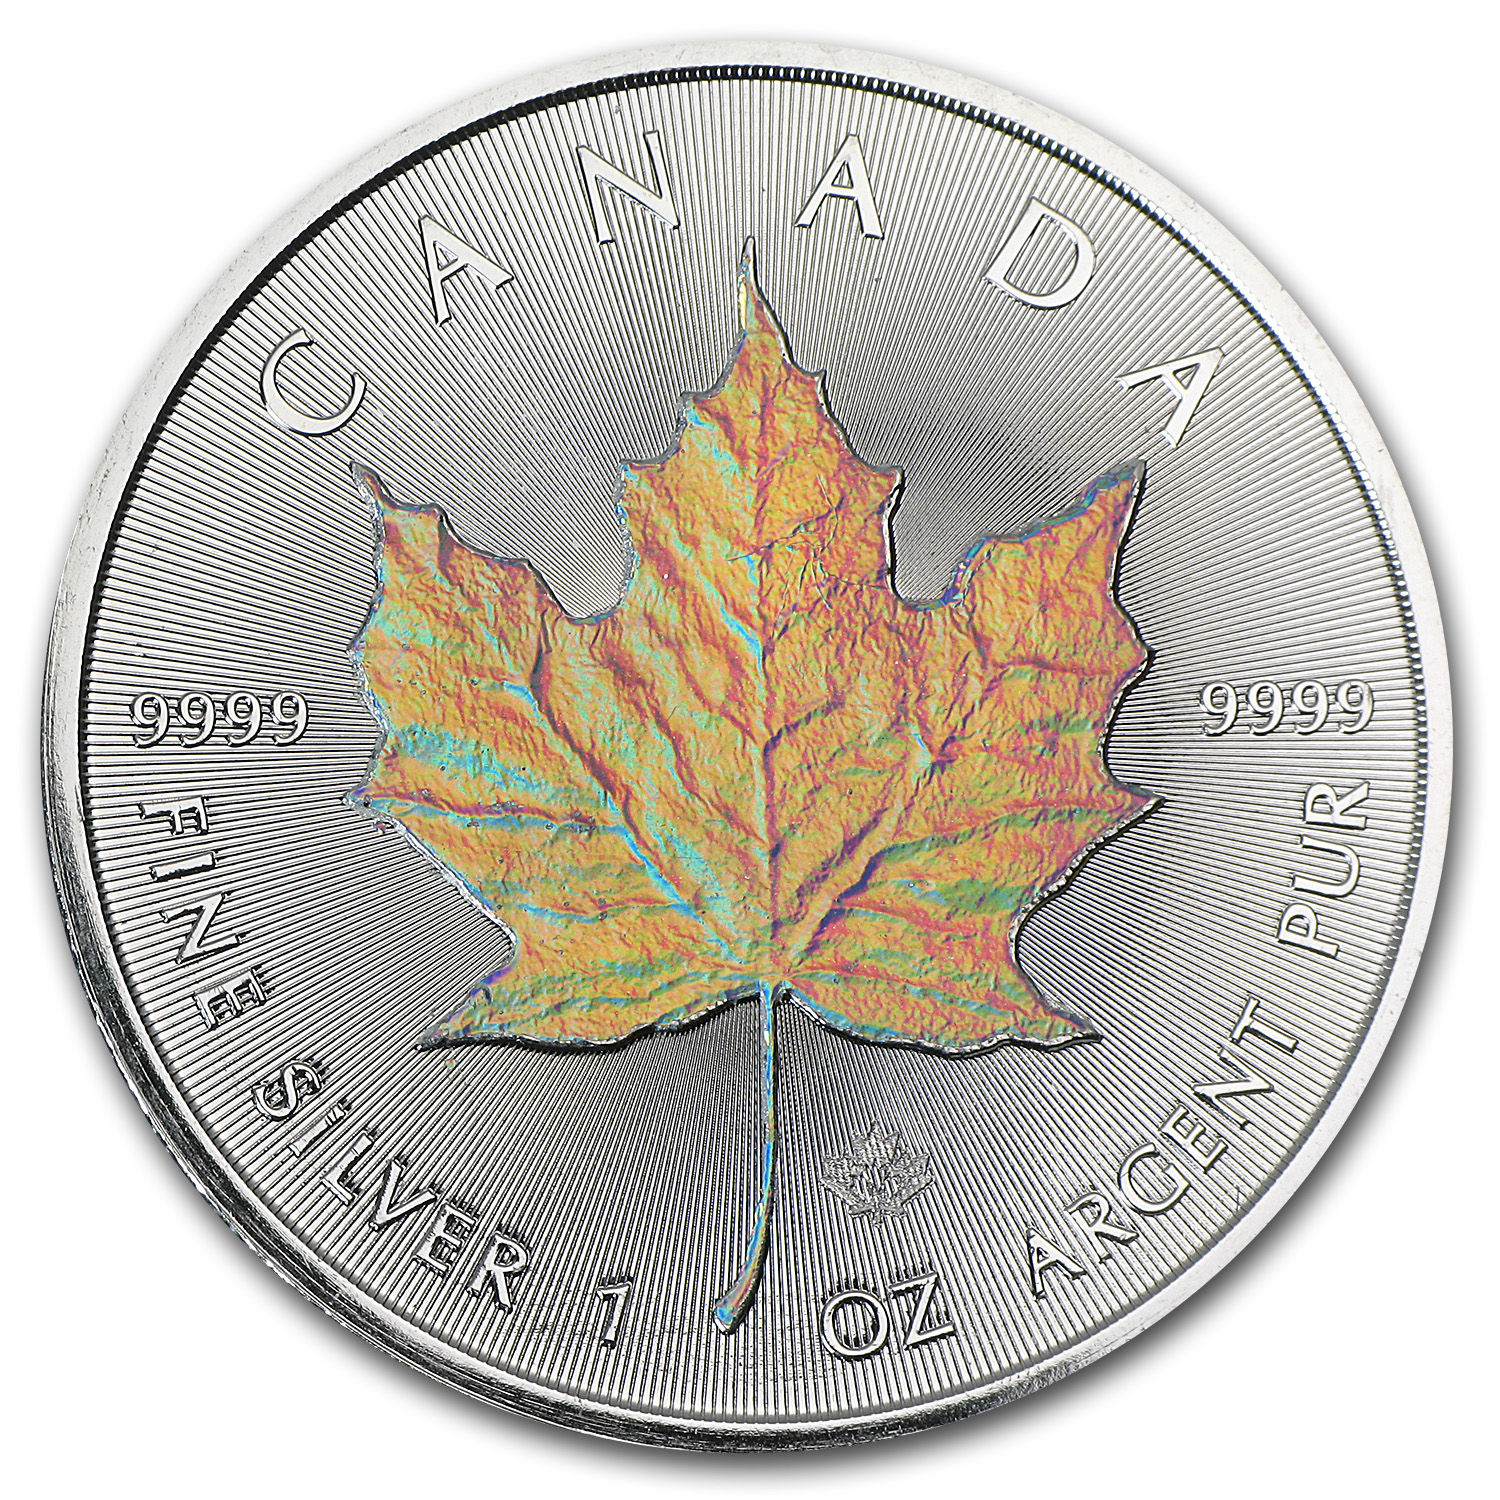 2014 1 oz Silver Canadian Maple Leaf - Hologram Maple Leaf